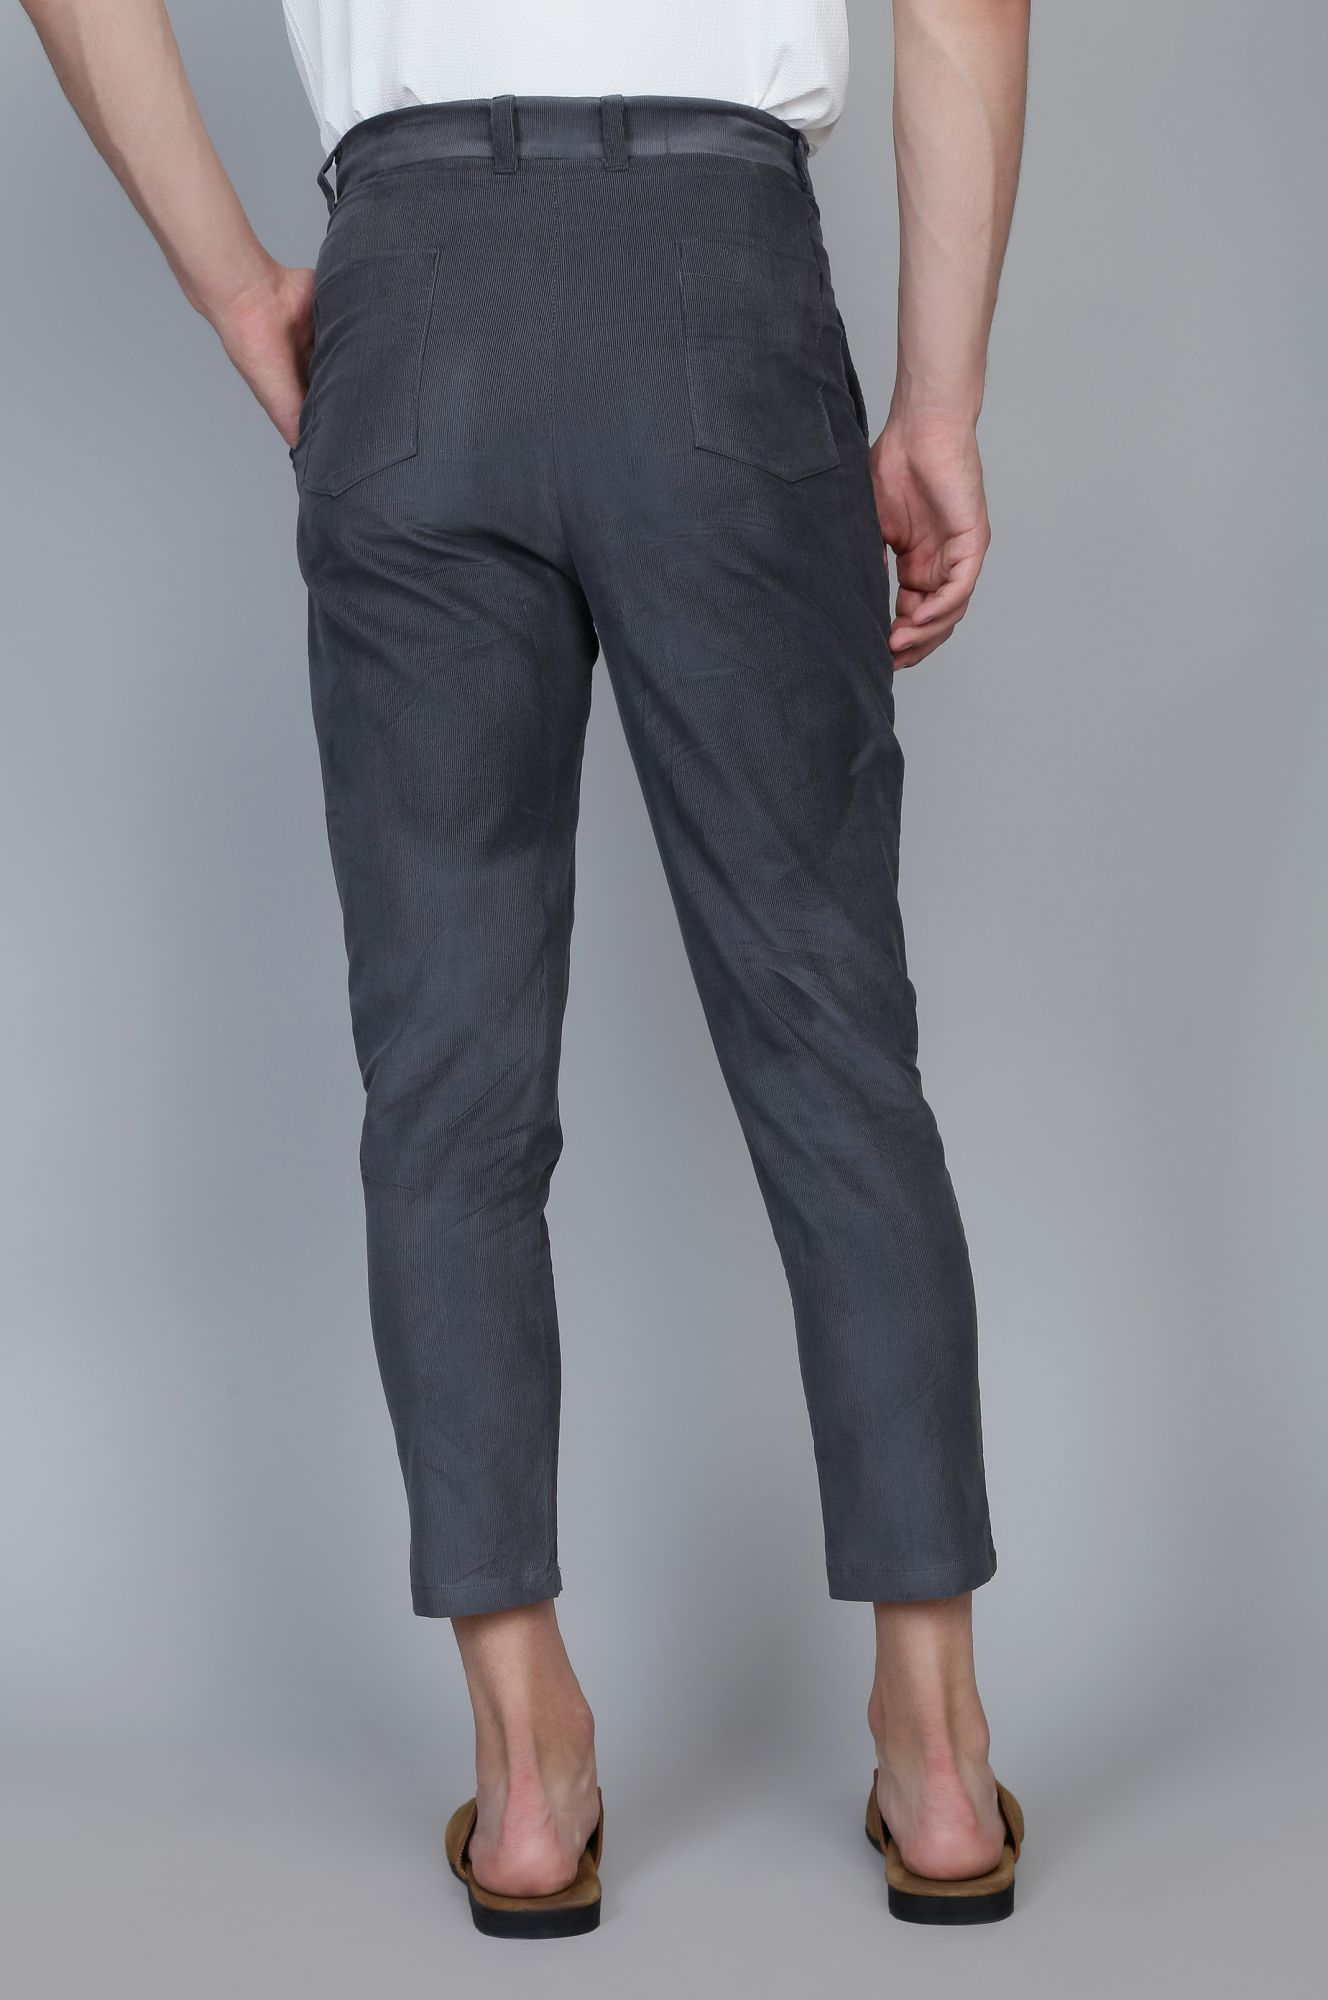 Corduroy Ankle pants in Grey